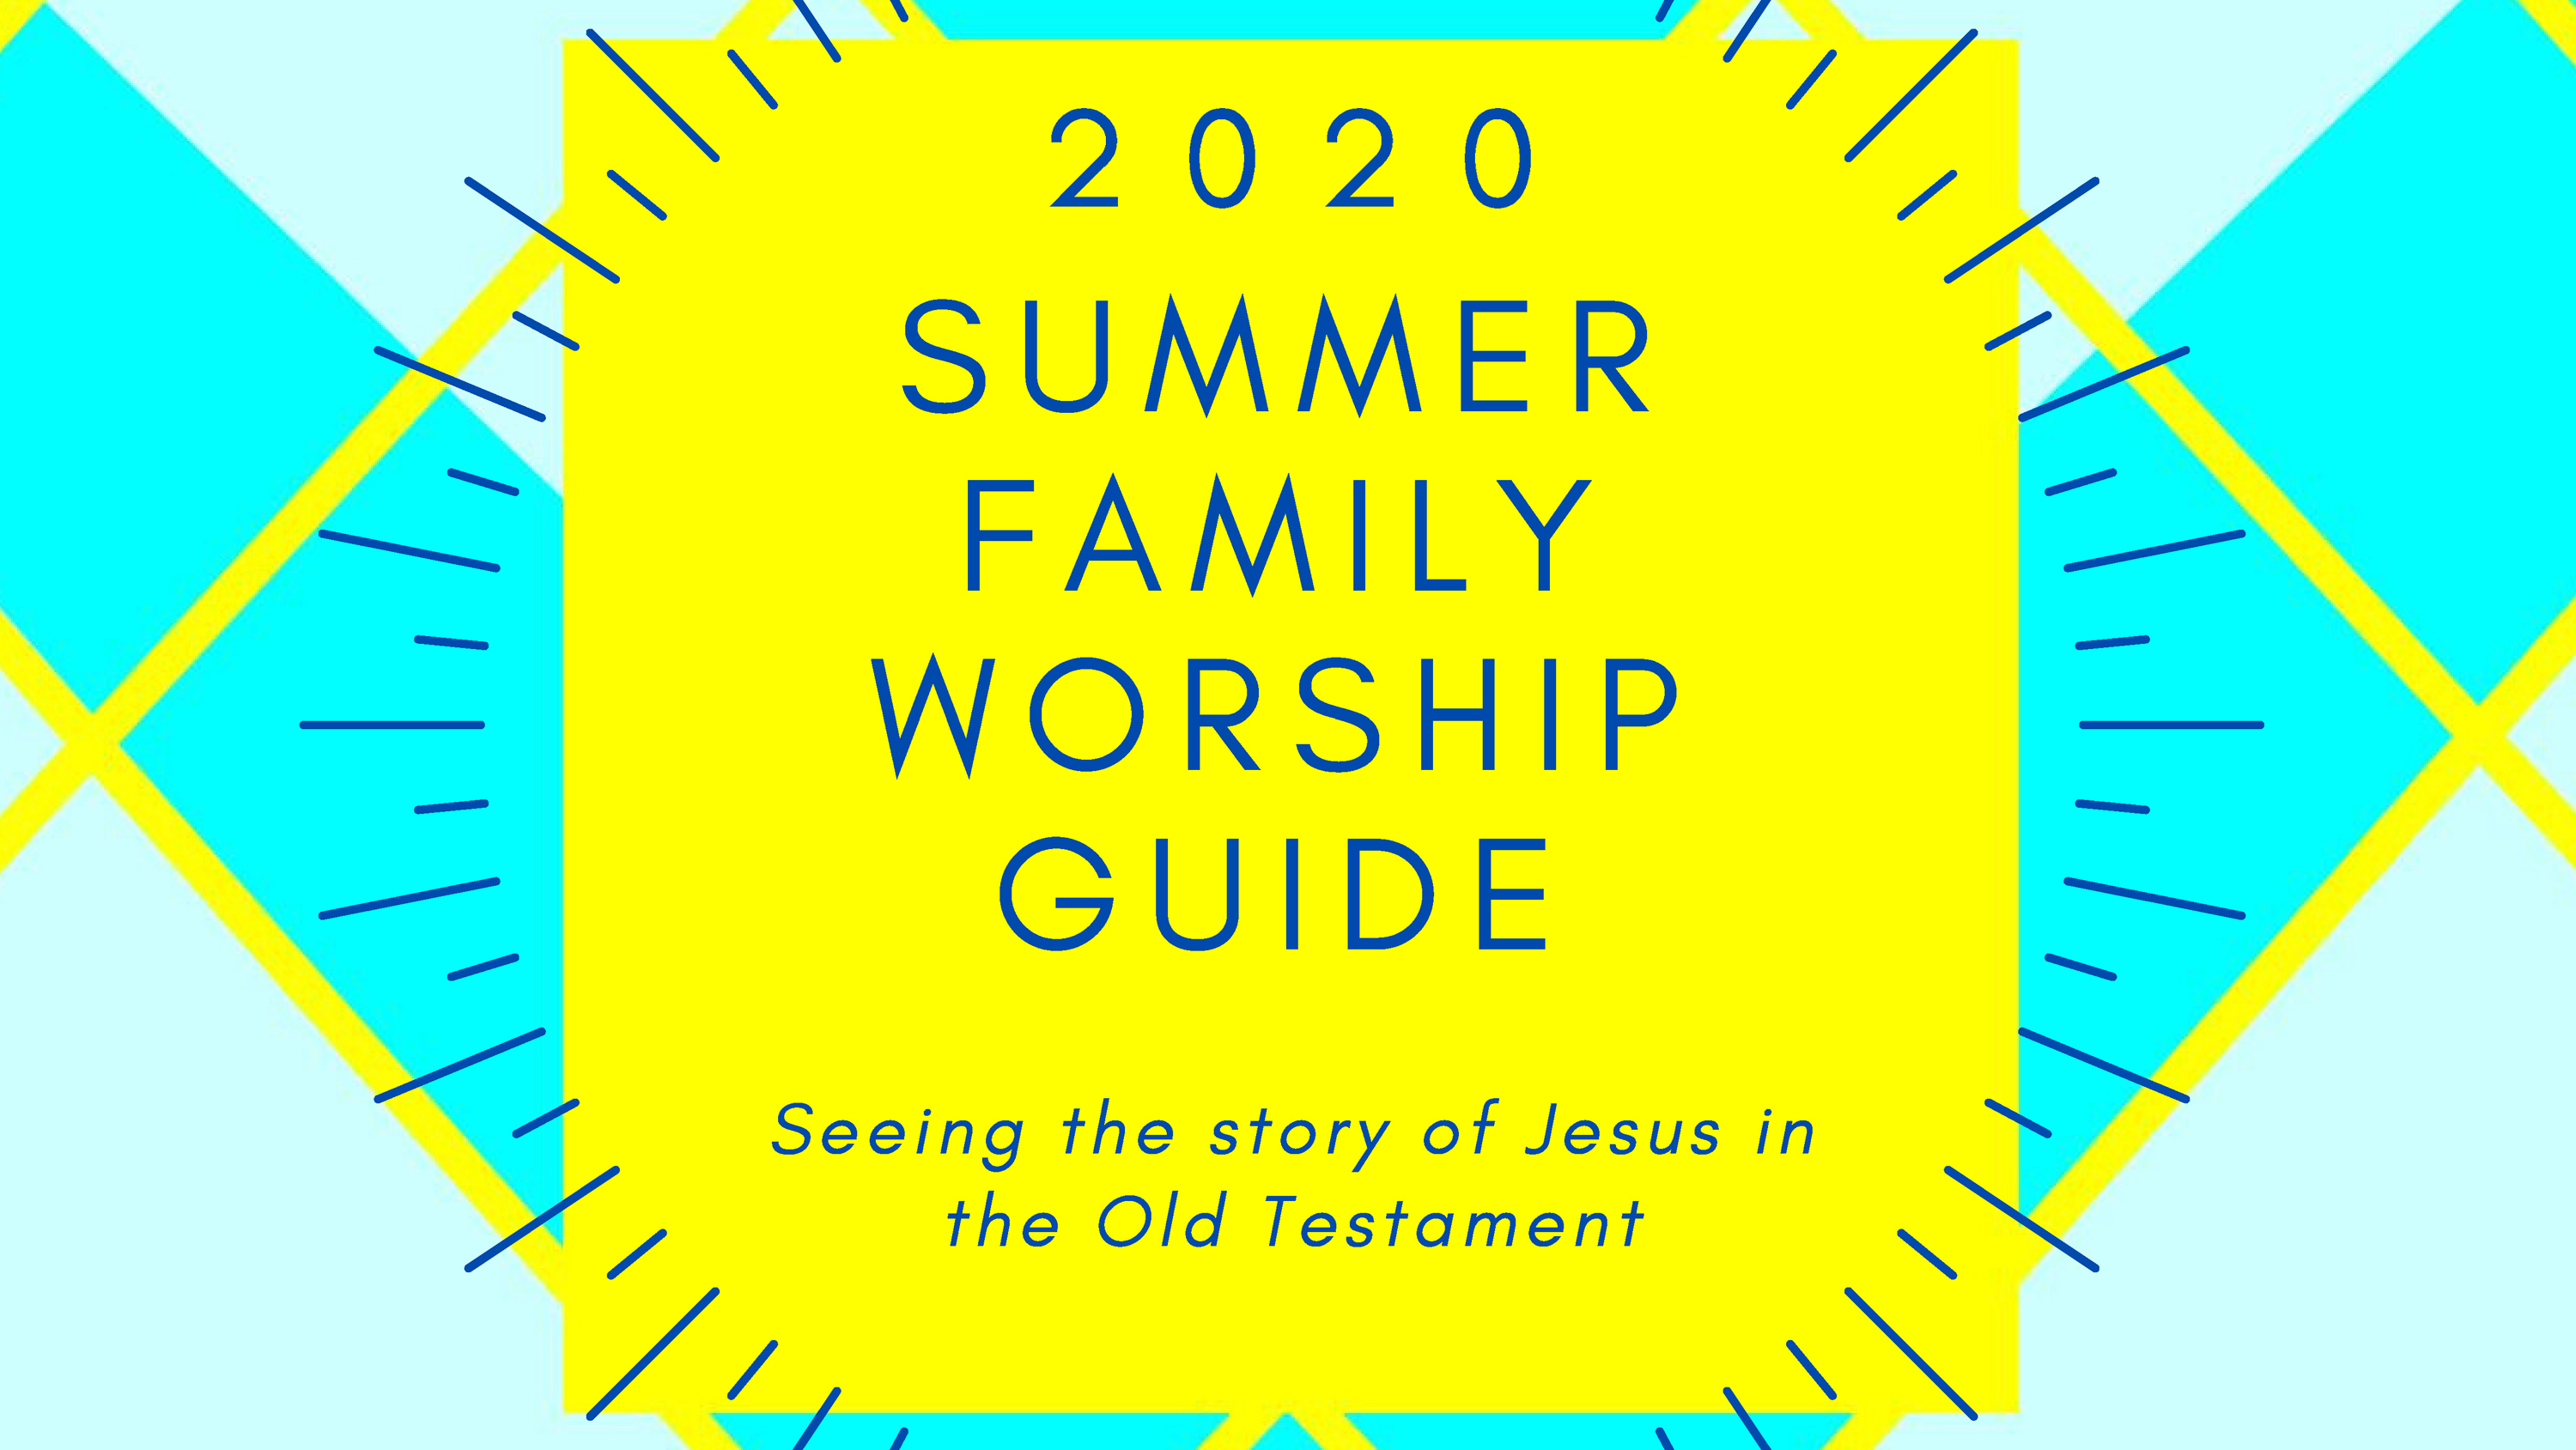 Summer Family Worship Guide 2020